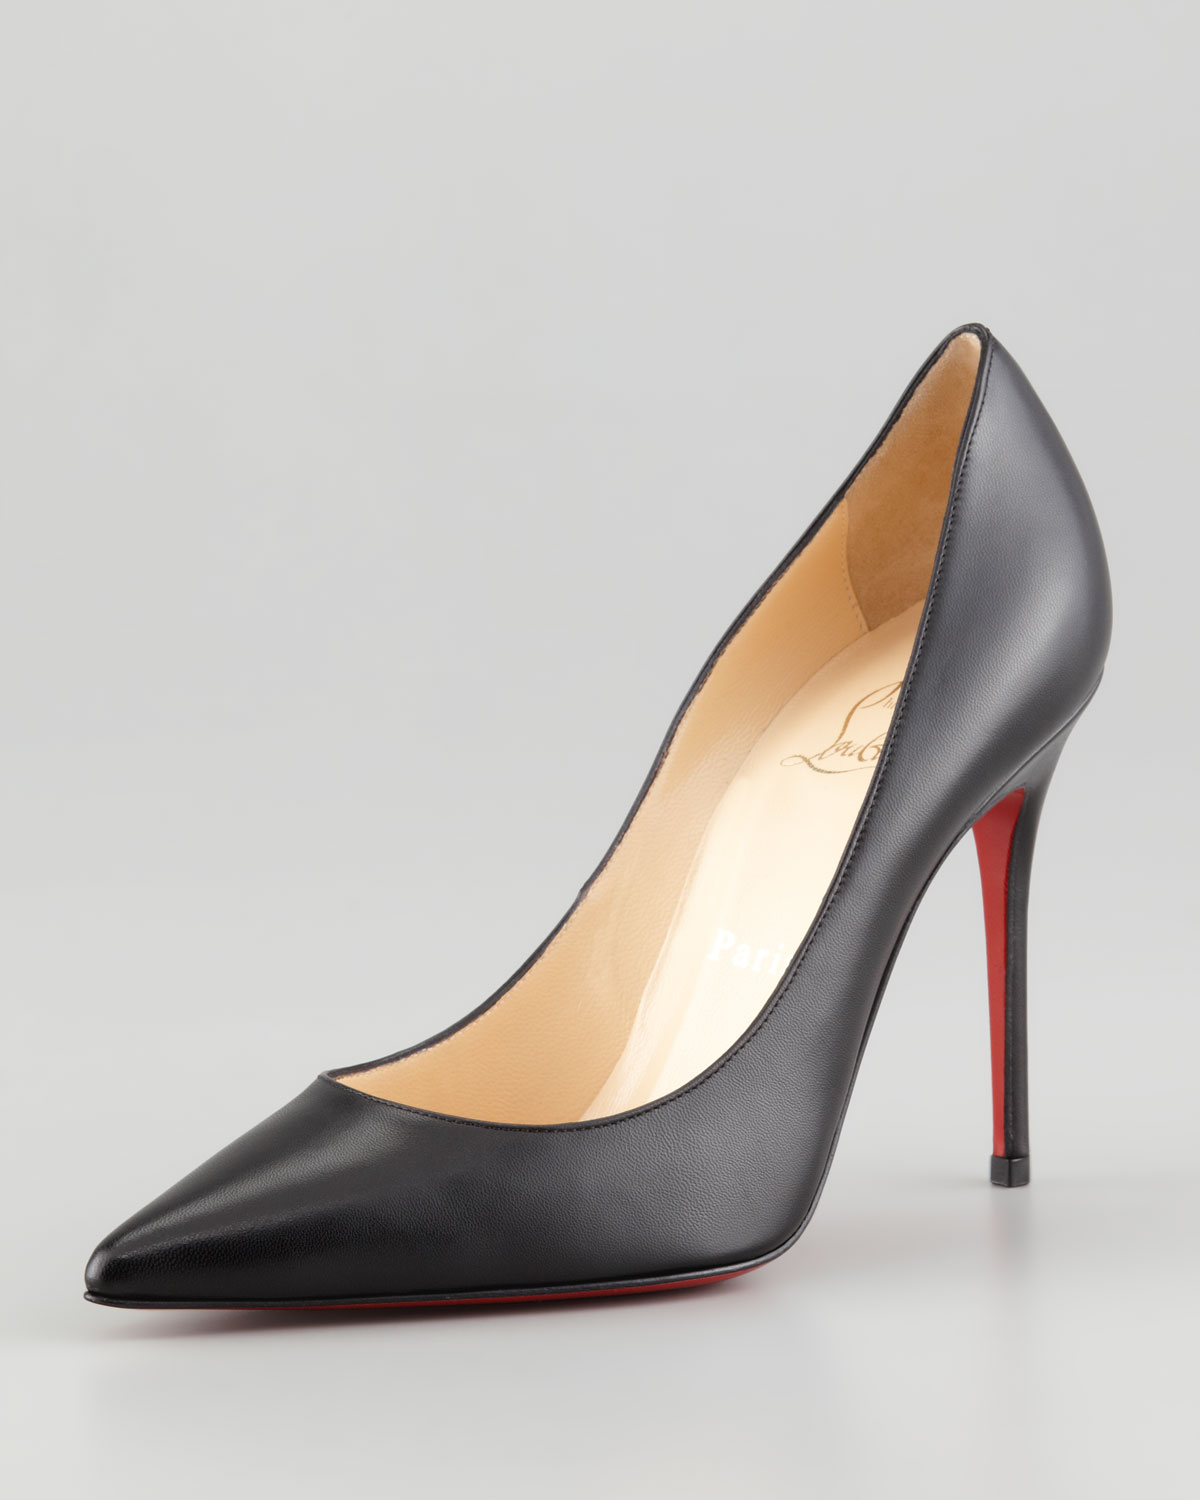 shoes louboutin replica - christian louboutin pointed-toe pumps Red patent leather ...